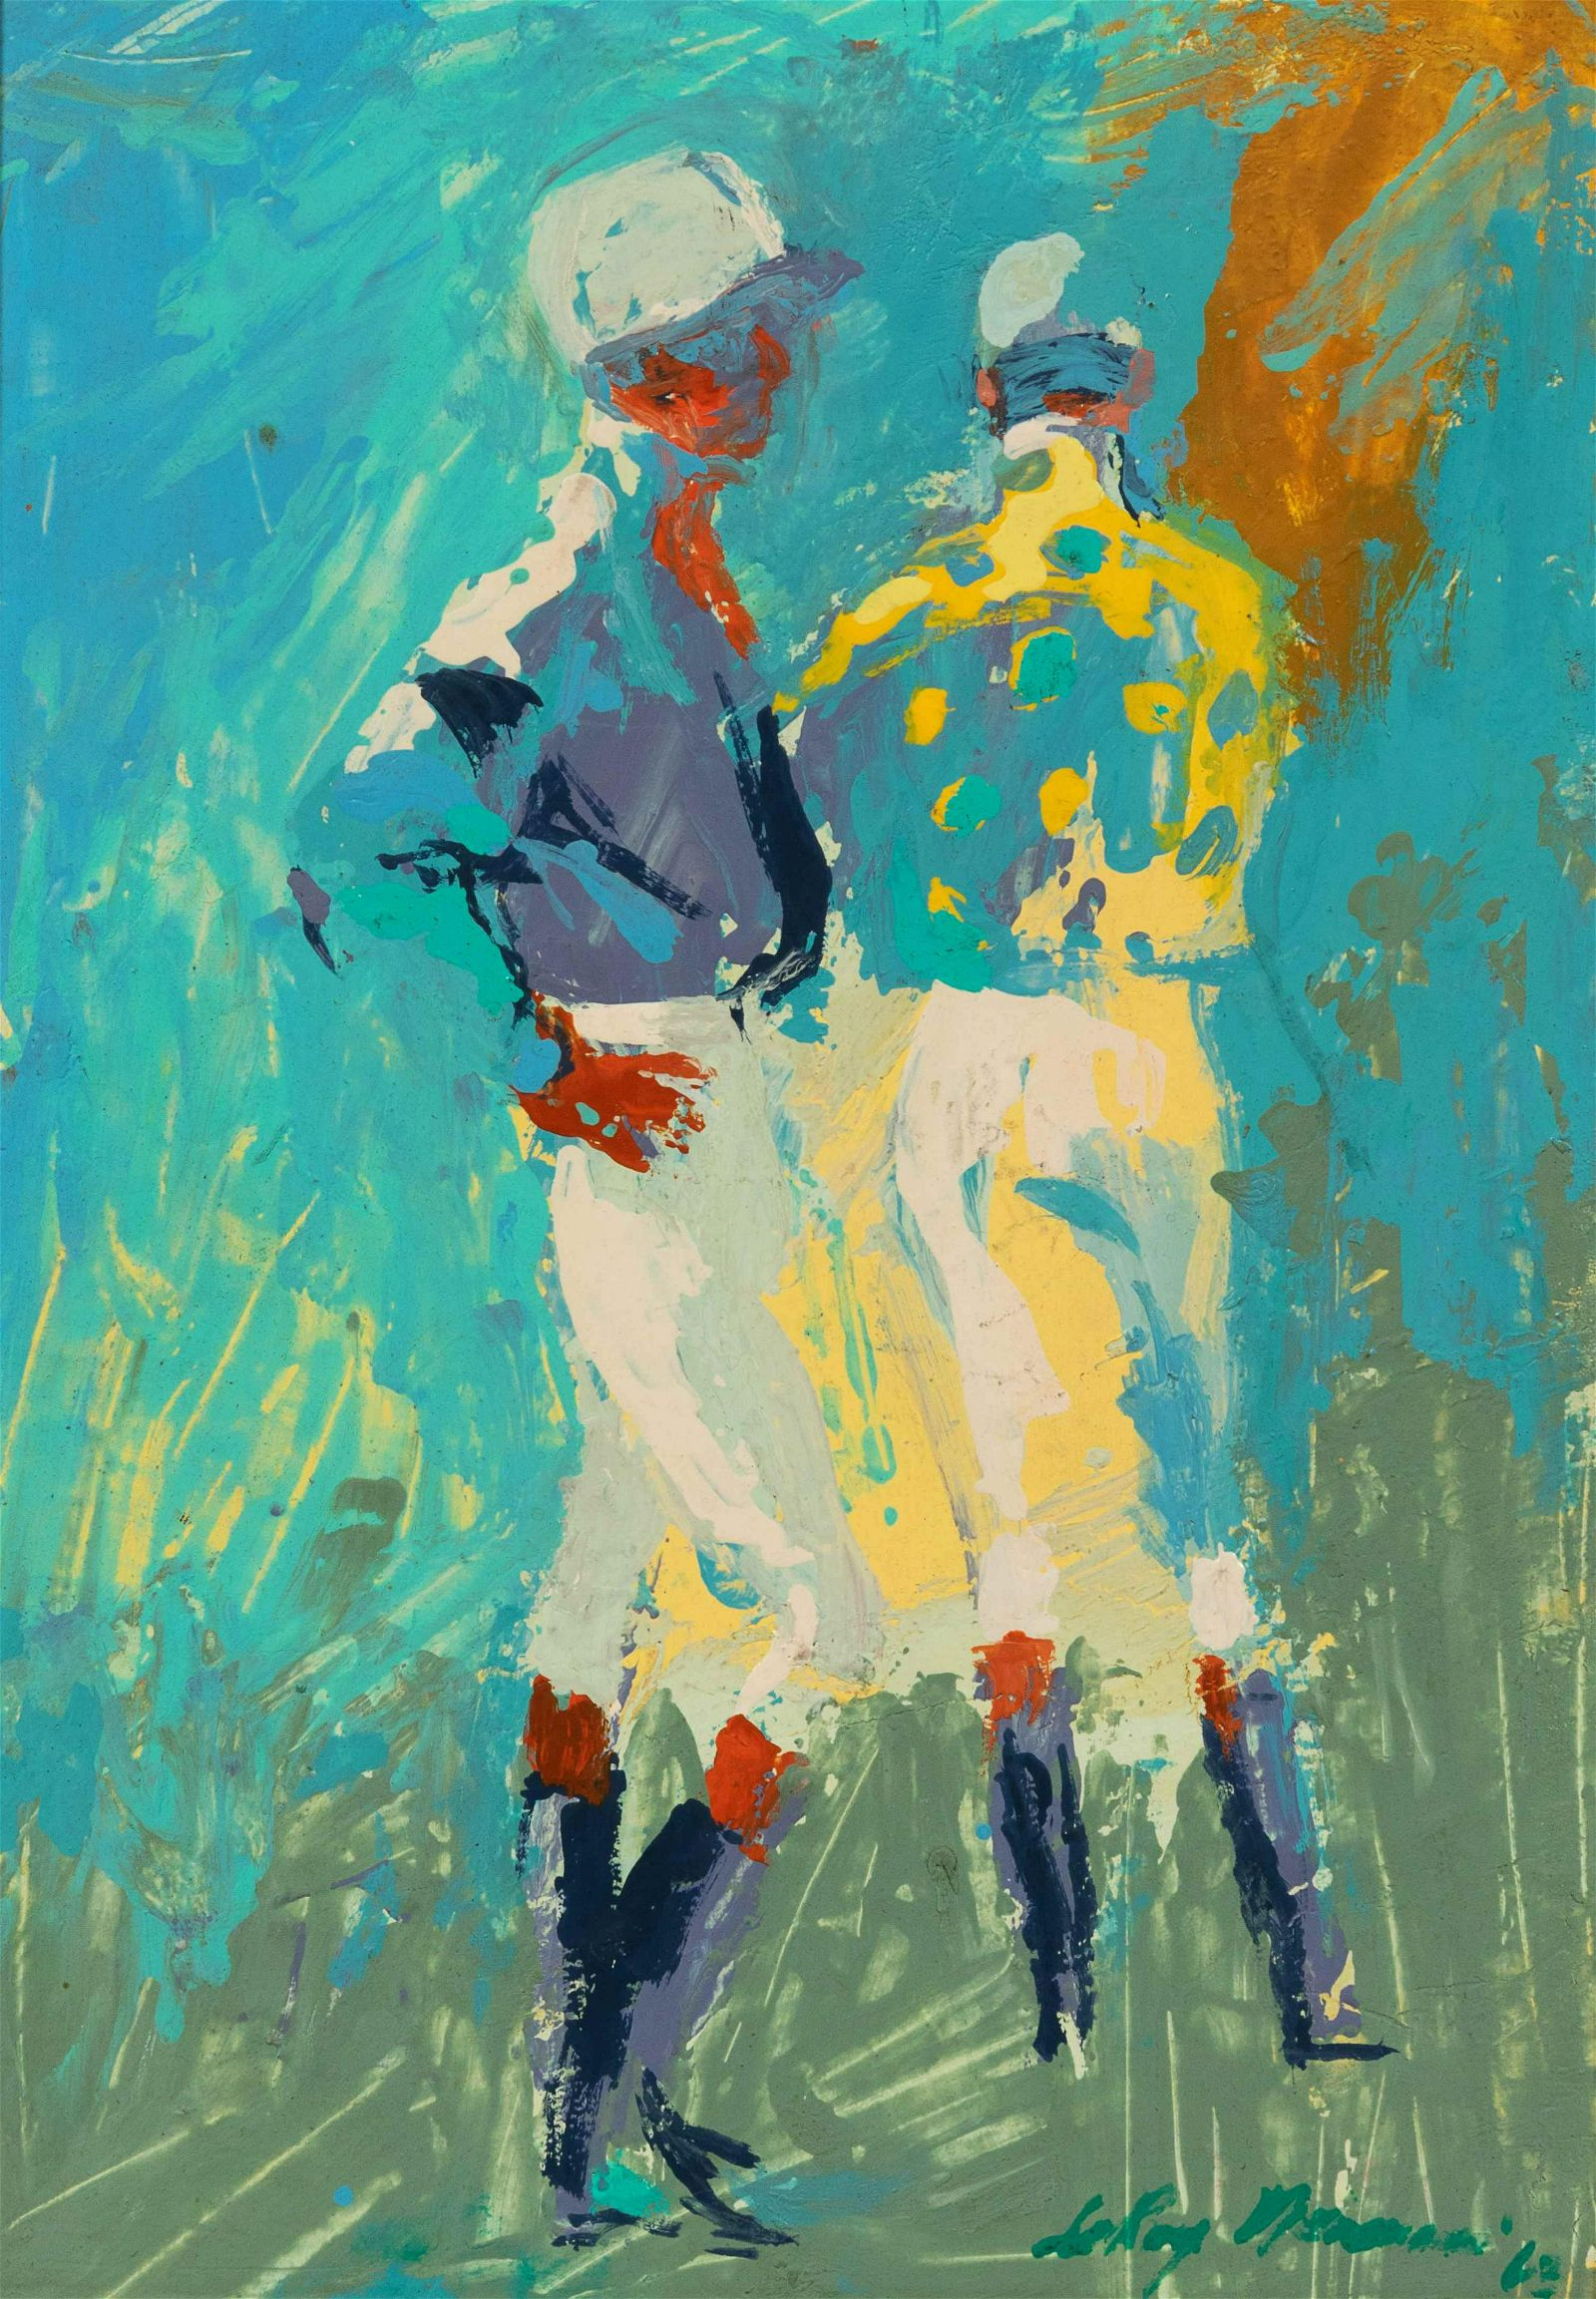 LeRoy Neiman (American, 1921-2012) Two Jockeys, 1963